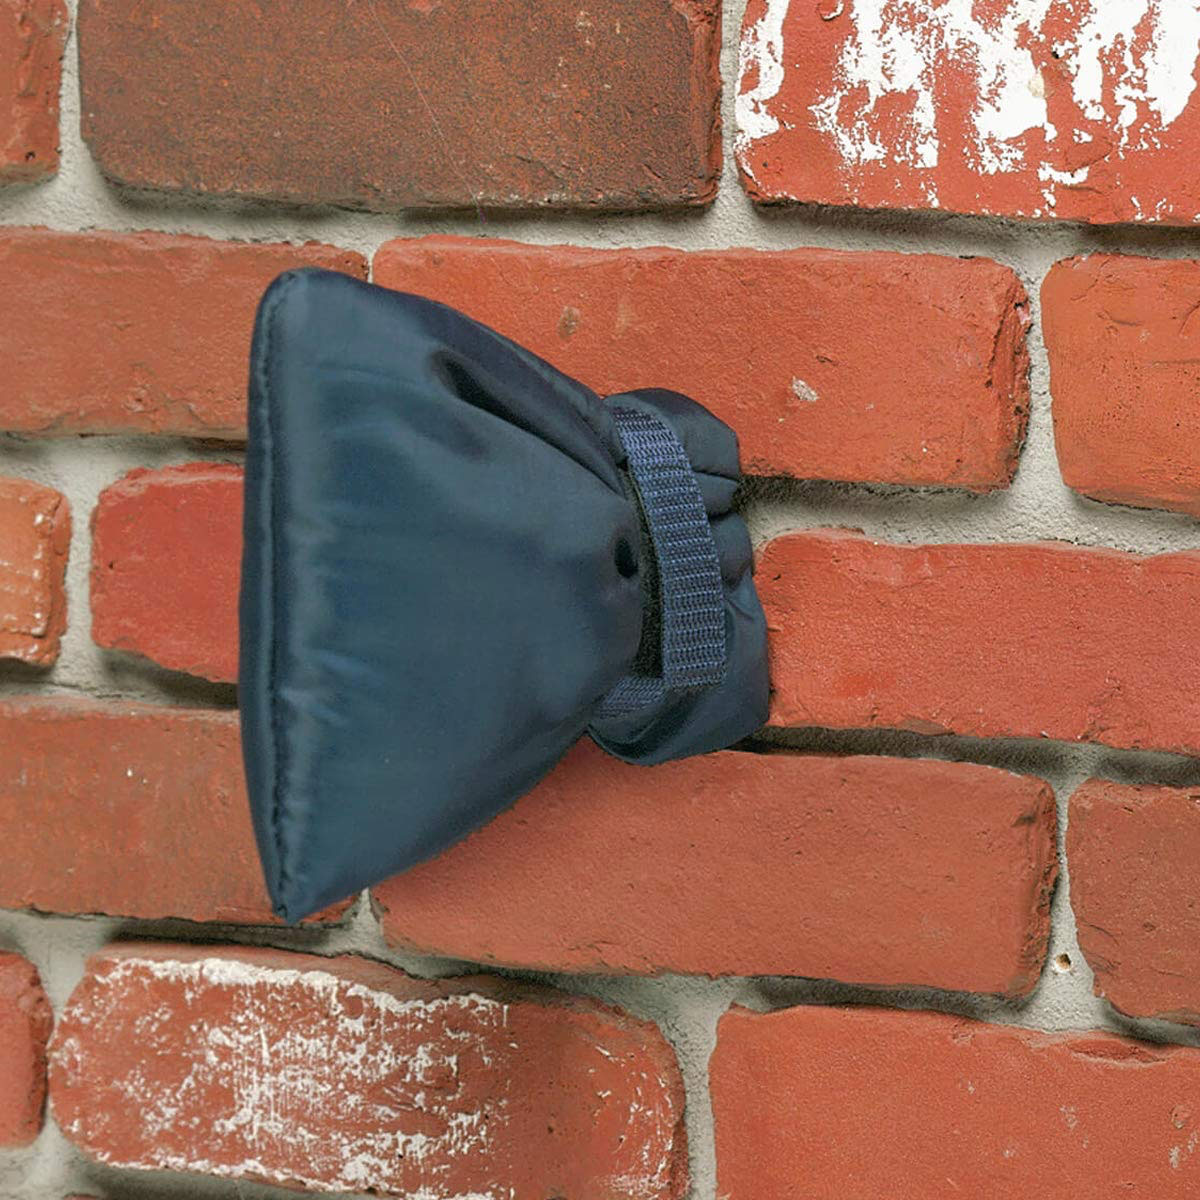 Insulated Outdoor Faucet Cover Prevents Frozen Pipes